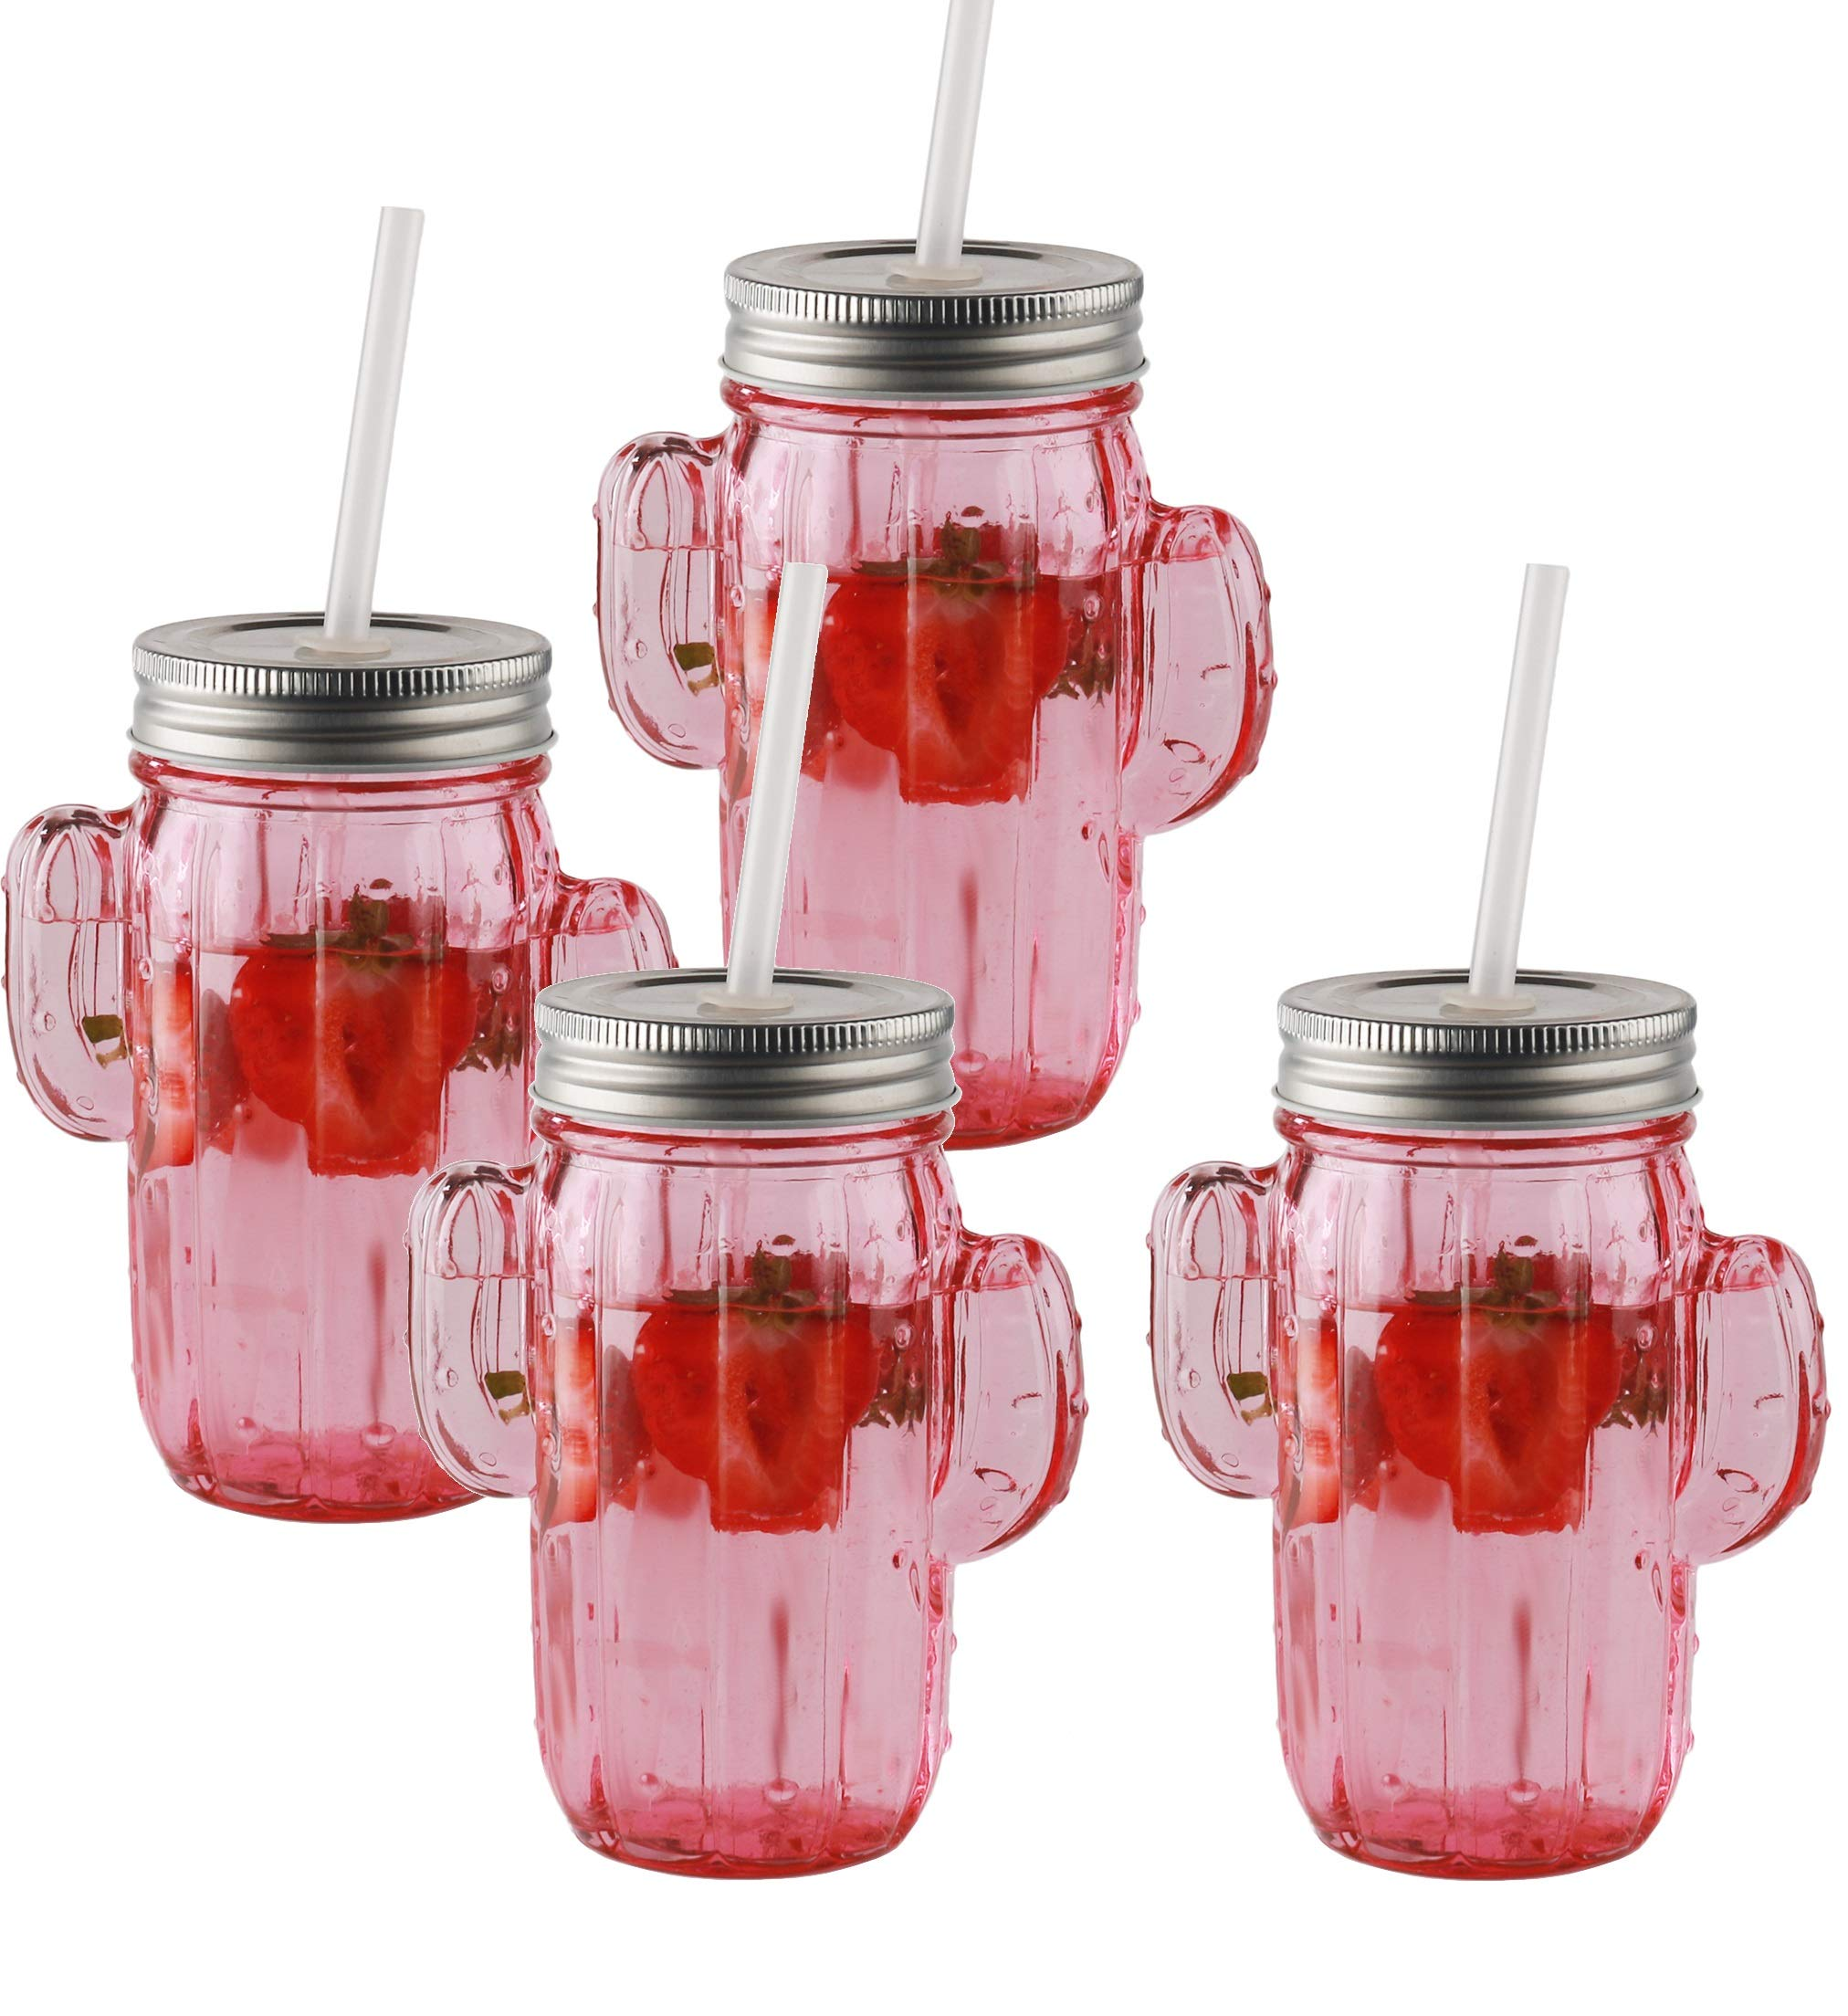 Circleware 06367 Huge Set of 12 Mason Jars Drinking Glasses with Metal Lids and Hard Straws Glassware for Water Beer and Kitchen & Home Decor Bar Dining Beverage Gifts, 15.5 oz, Pink Cactus-12pc by Circleware (Image #8)